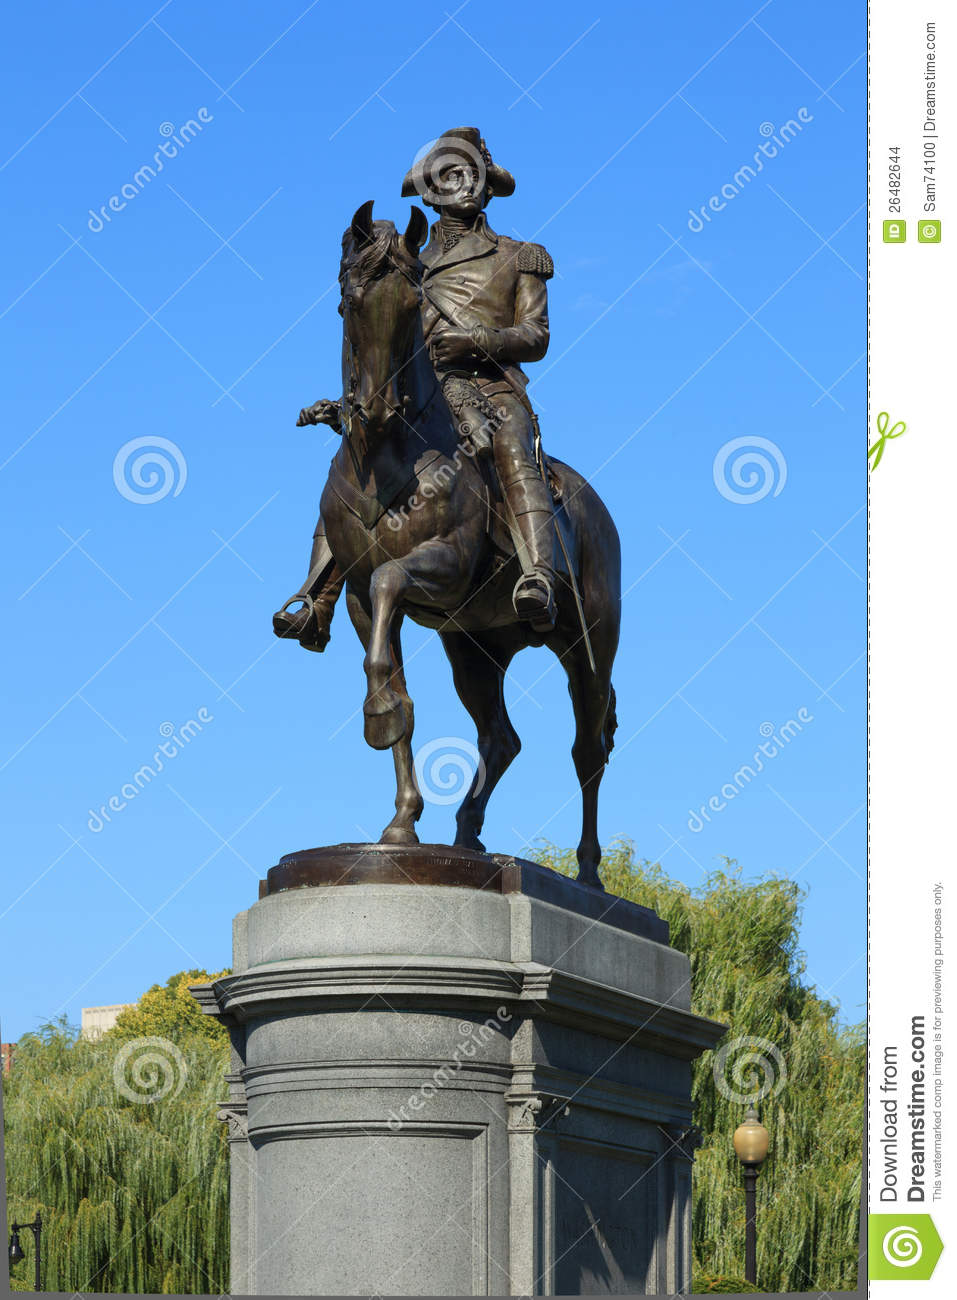 George Washington Statue In Boston Common Park Stock